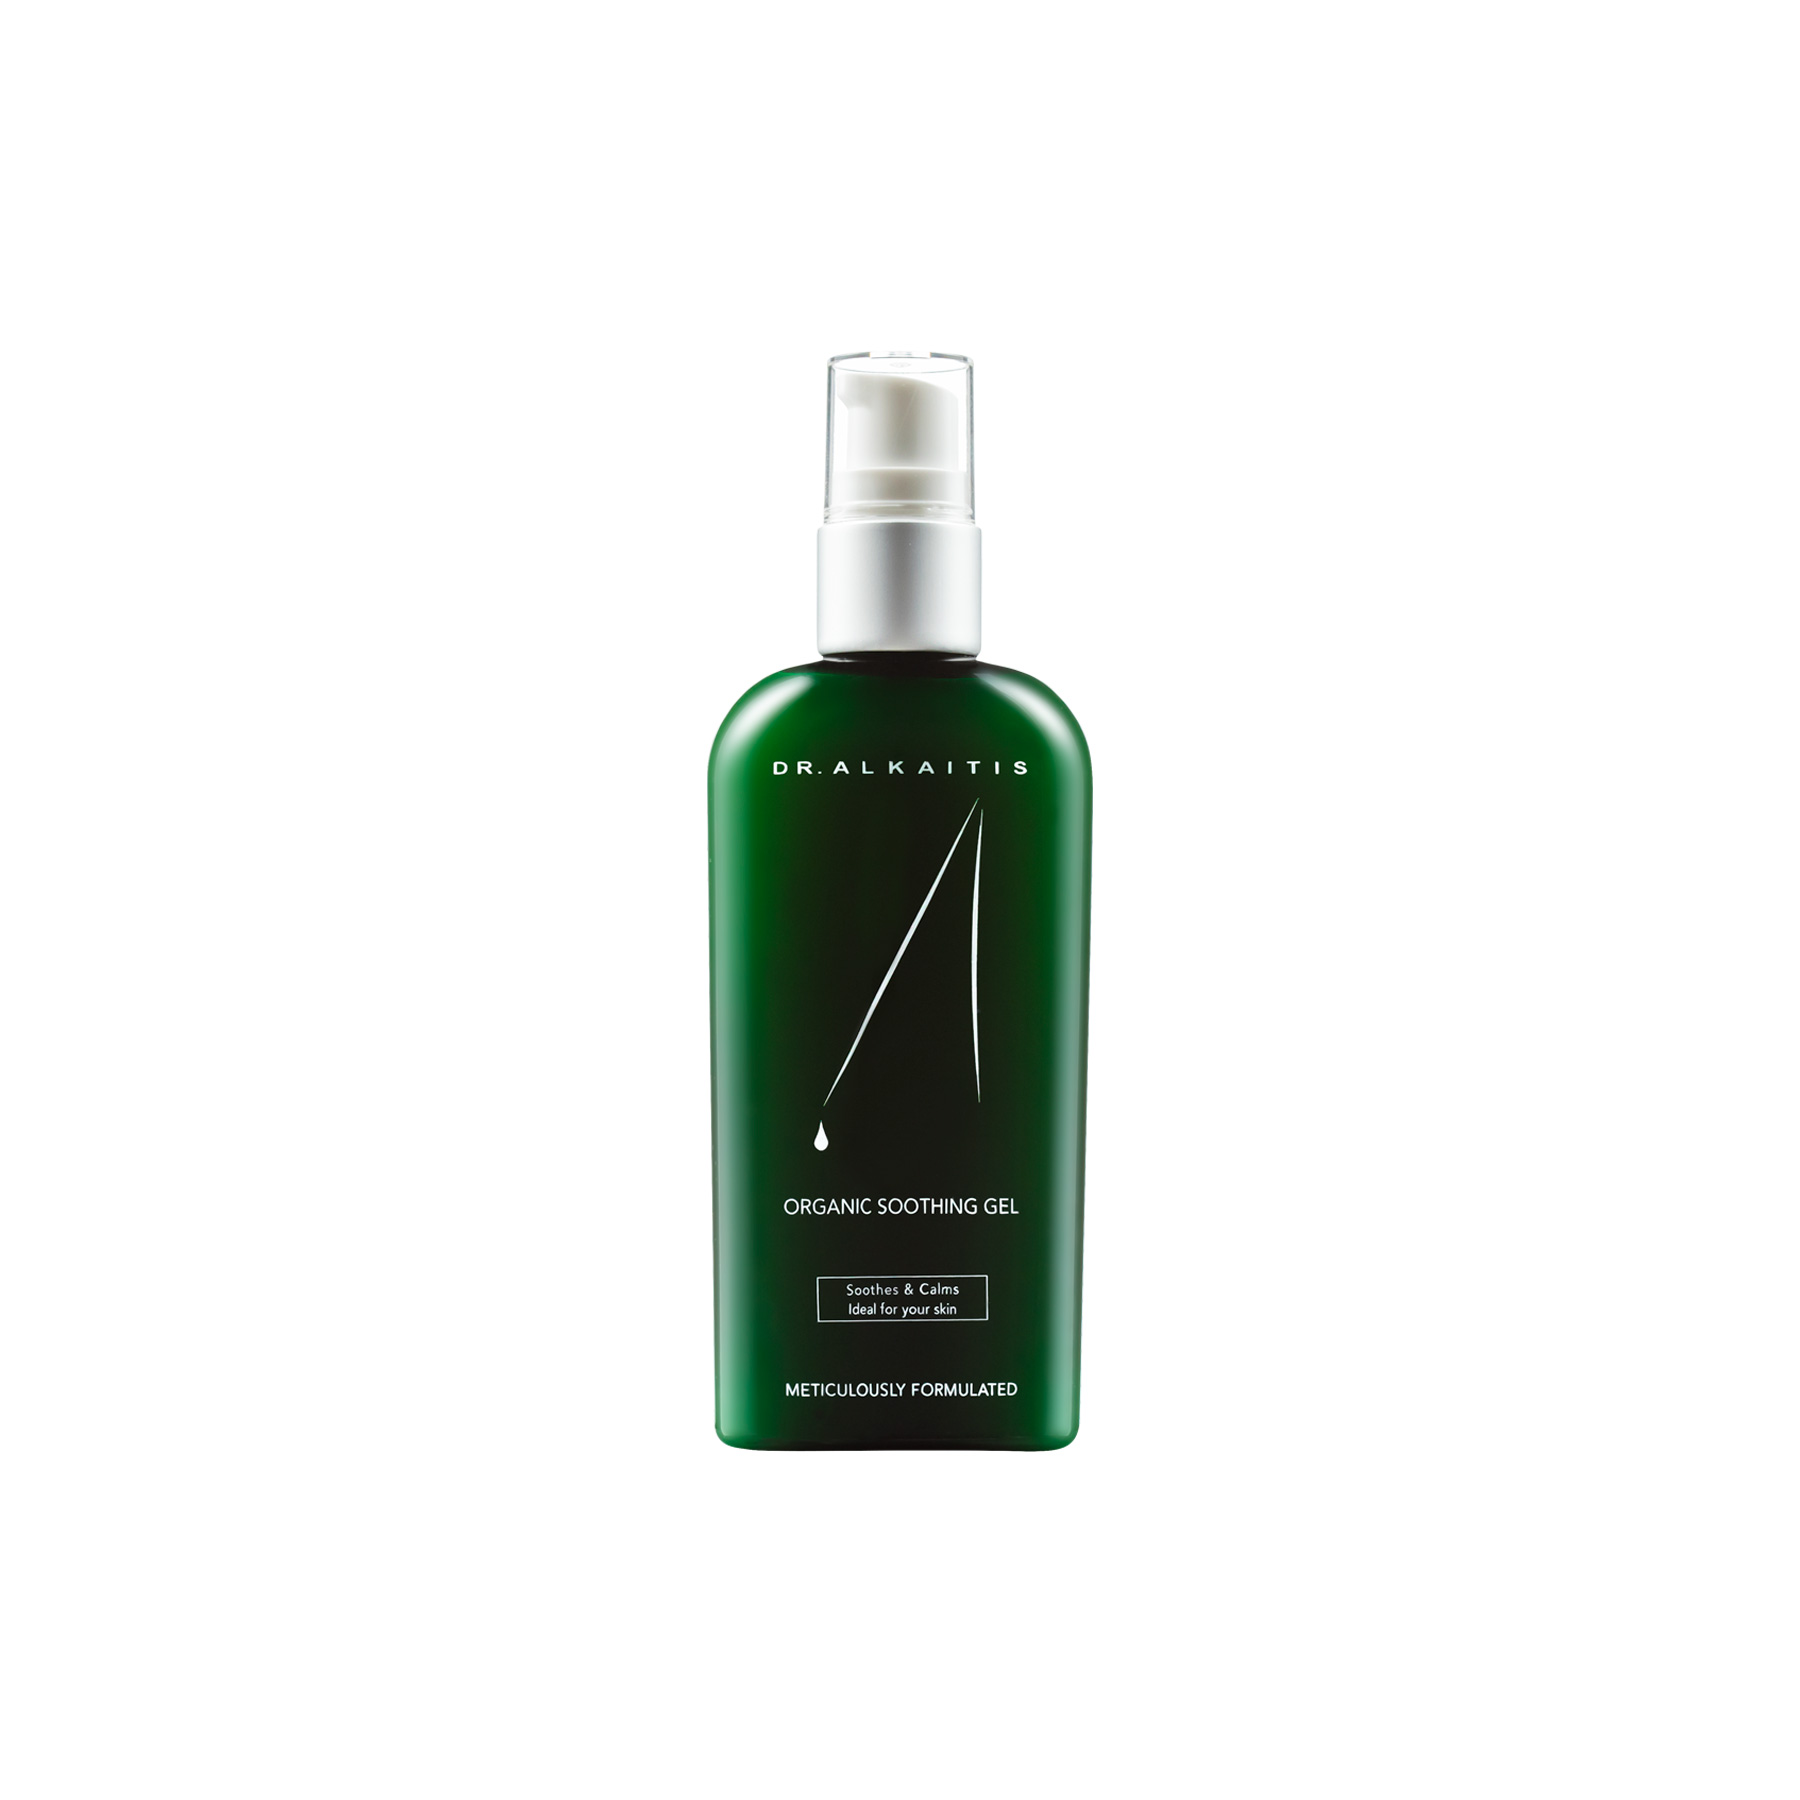 Organic Soothing Gel • $45   Moisturizing gel  If you prefer oil-free, this aloe-based gel is a refreshing alternative.